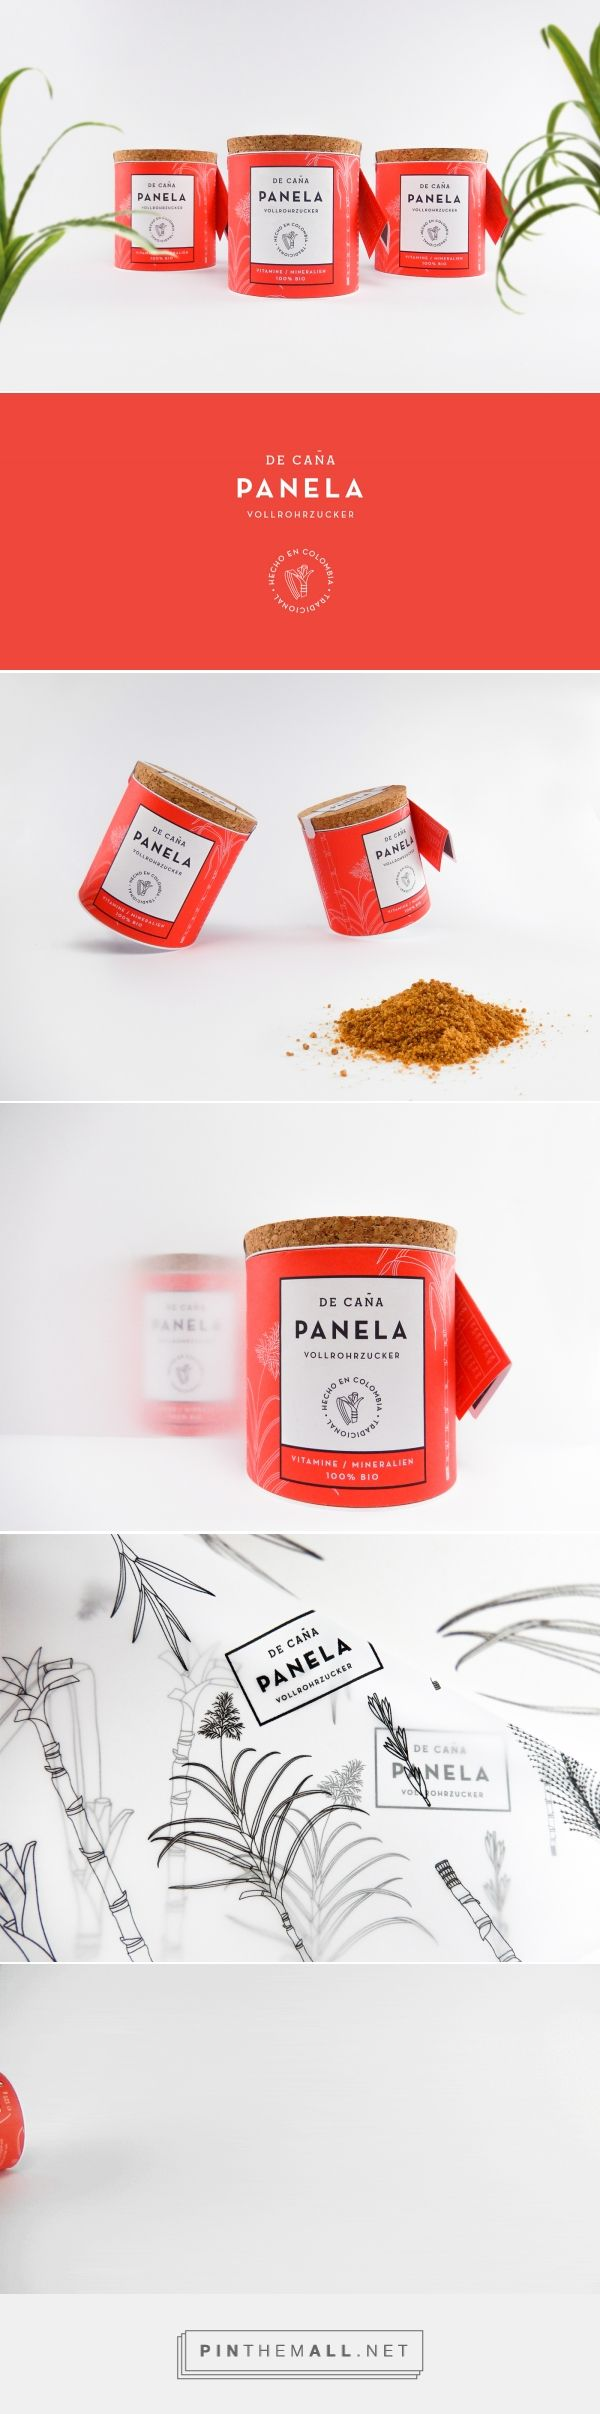 De Caña Panela Sugarcane by Gabriela Dule. Source: Bechance. Pin curated by #SFields99 #packaging #design #inspiration #ideas #branding #sugar #